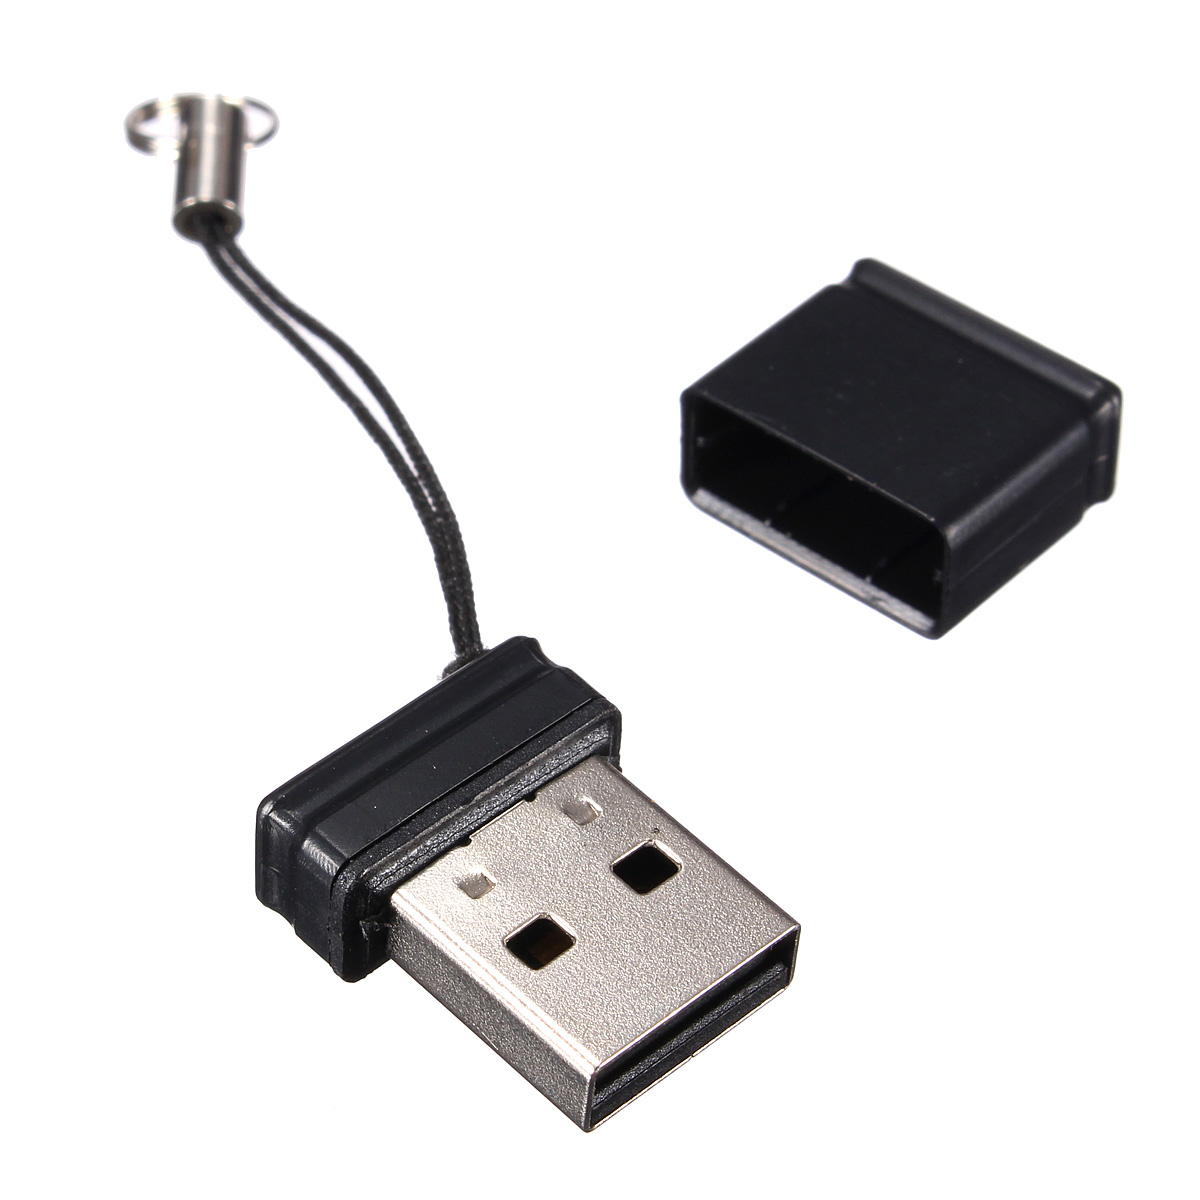 8gb 8 gb usb 2 0 speicherstick flash drive memory stick mini schwarz datenstick ebay. Black Bedroom Furniture Sets. Home Design Ideas